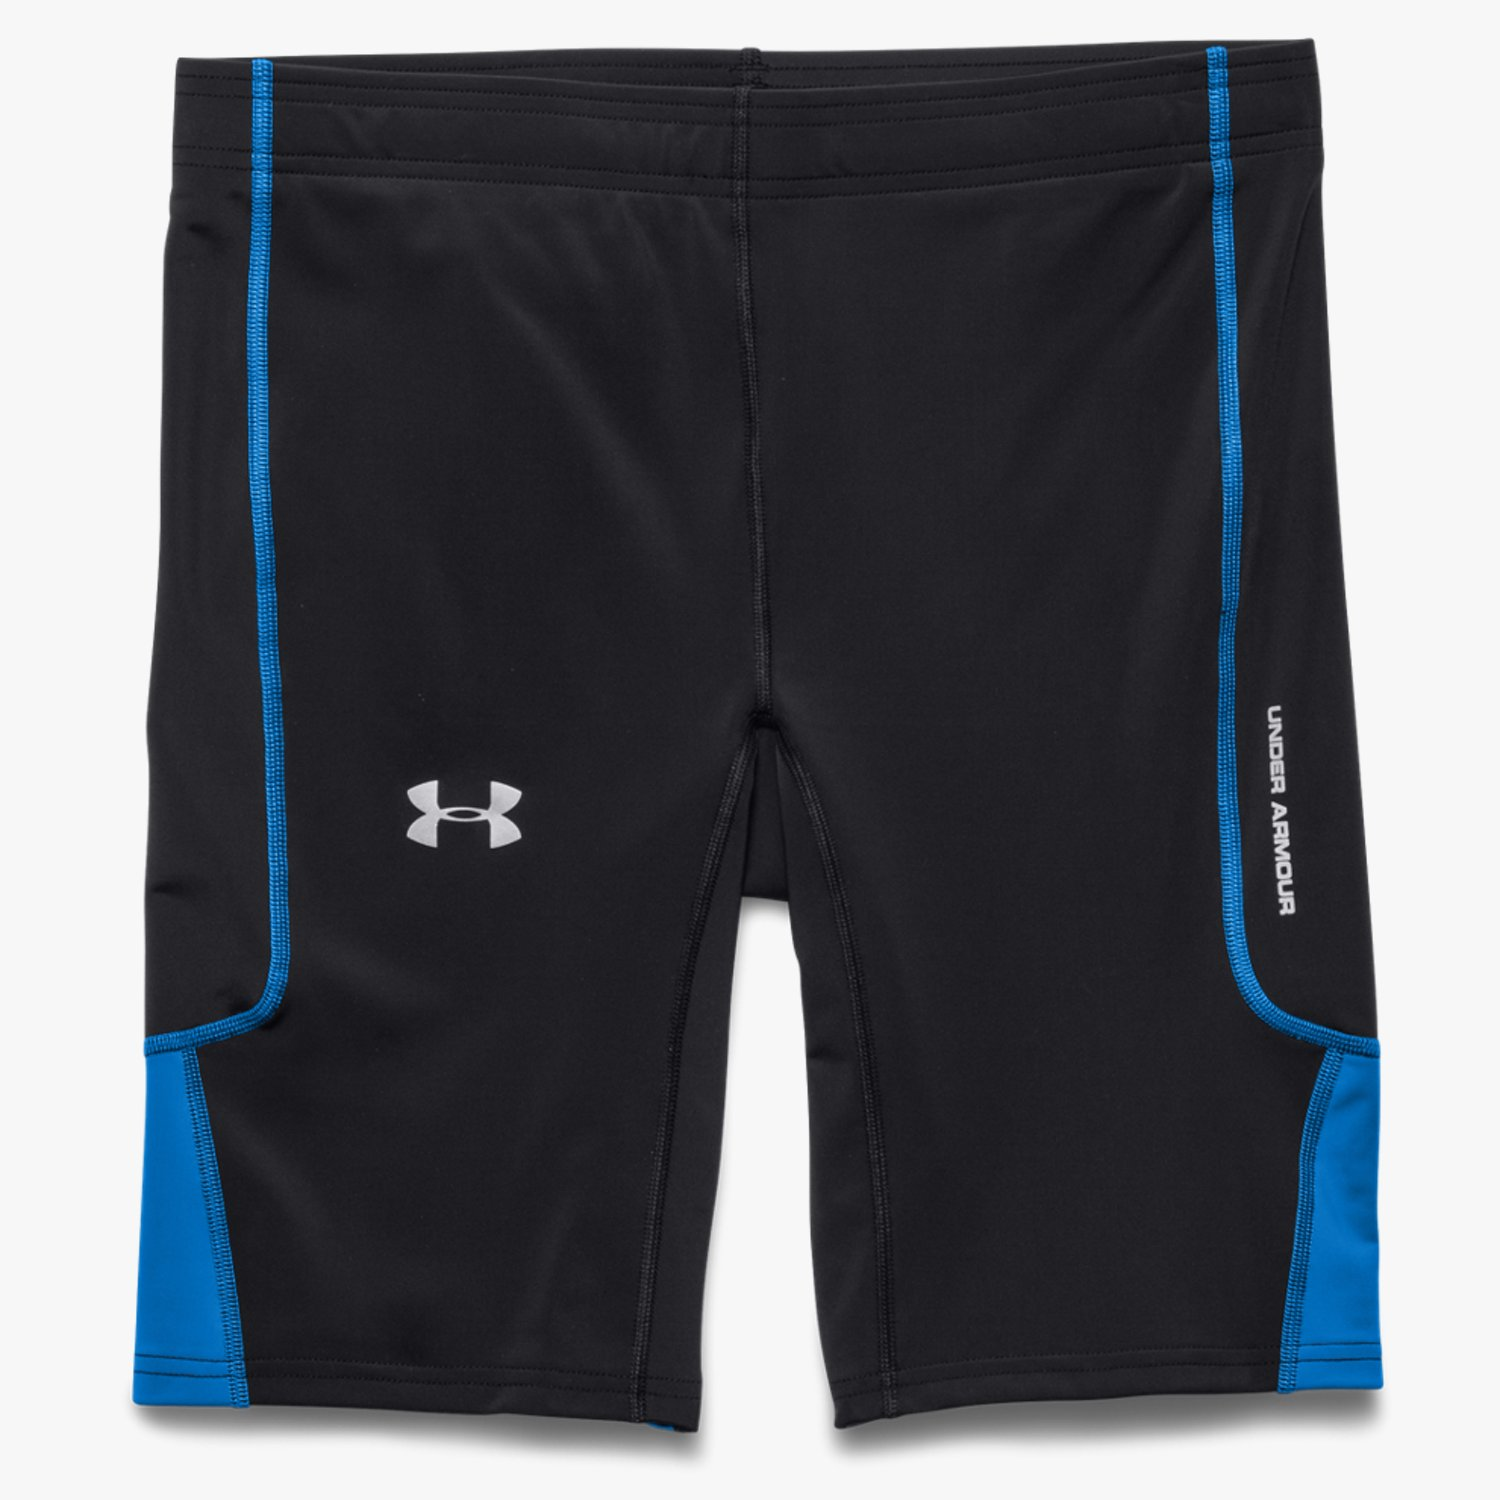 Under Armour UA Run Compression Shorts Black/Blue Jet-30